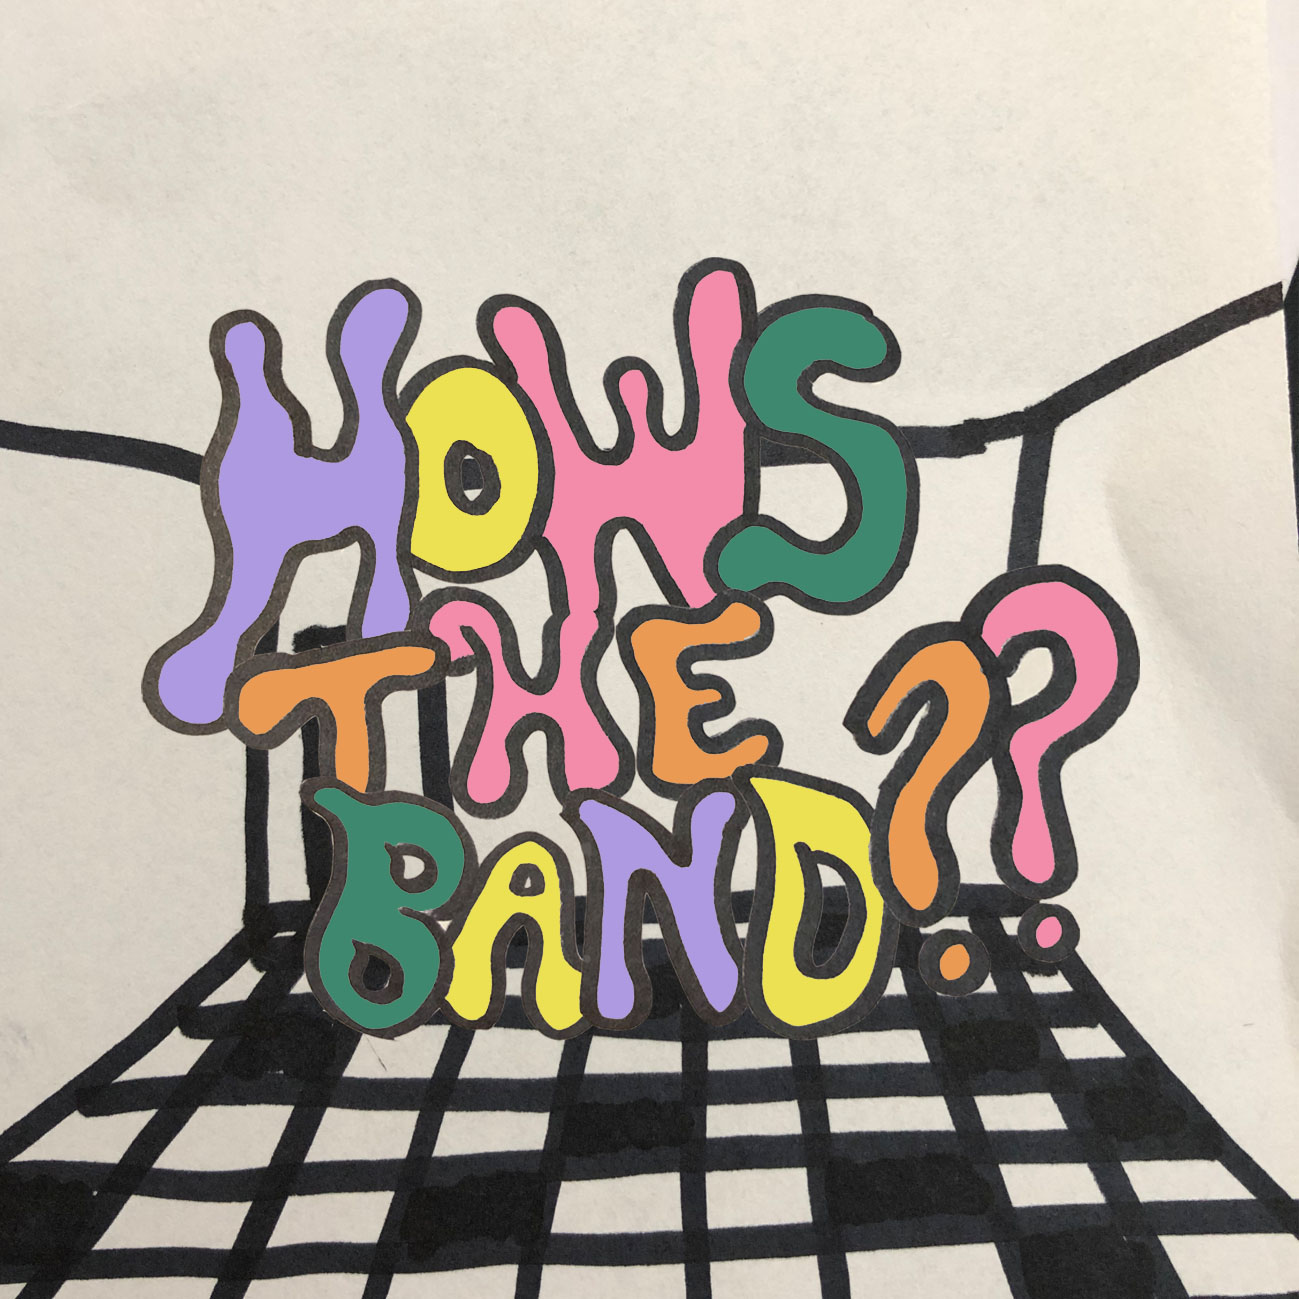 How's The Band? (Formerly The Big Punk Show) podcast show image